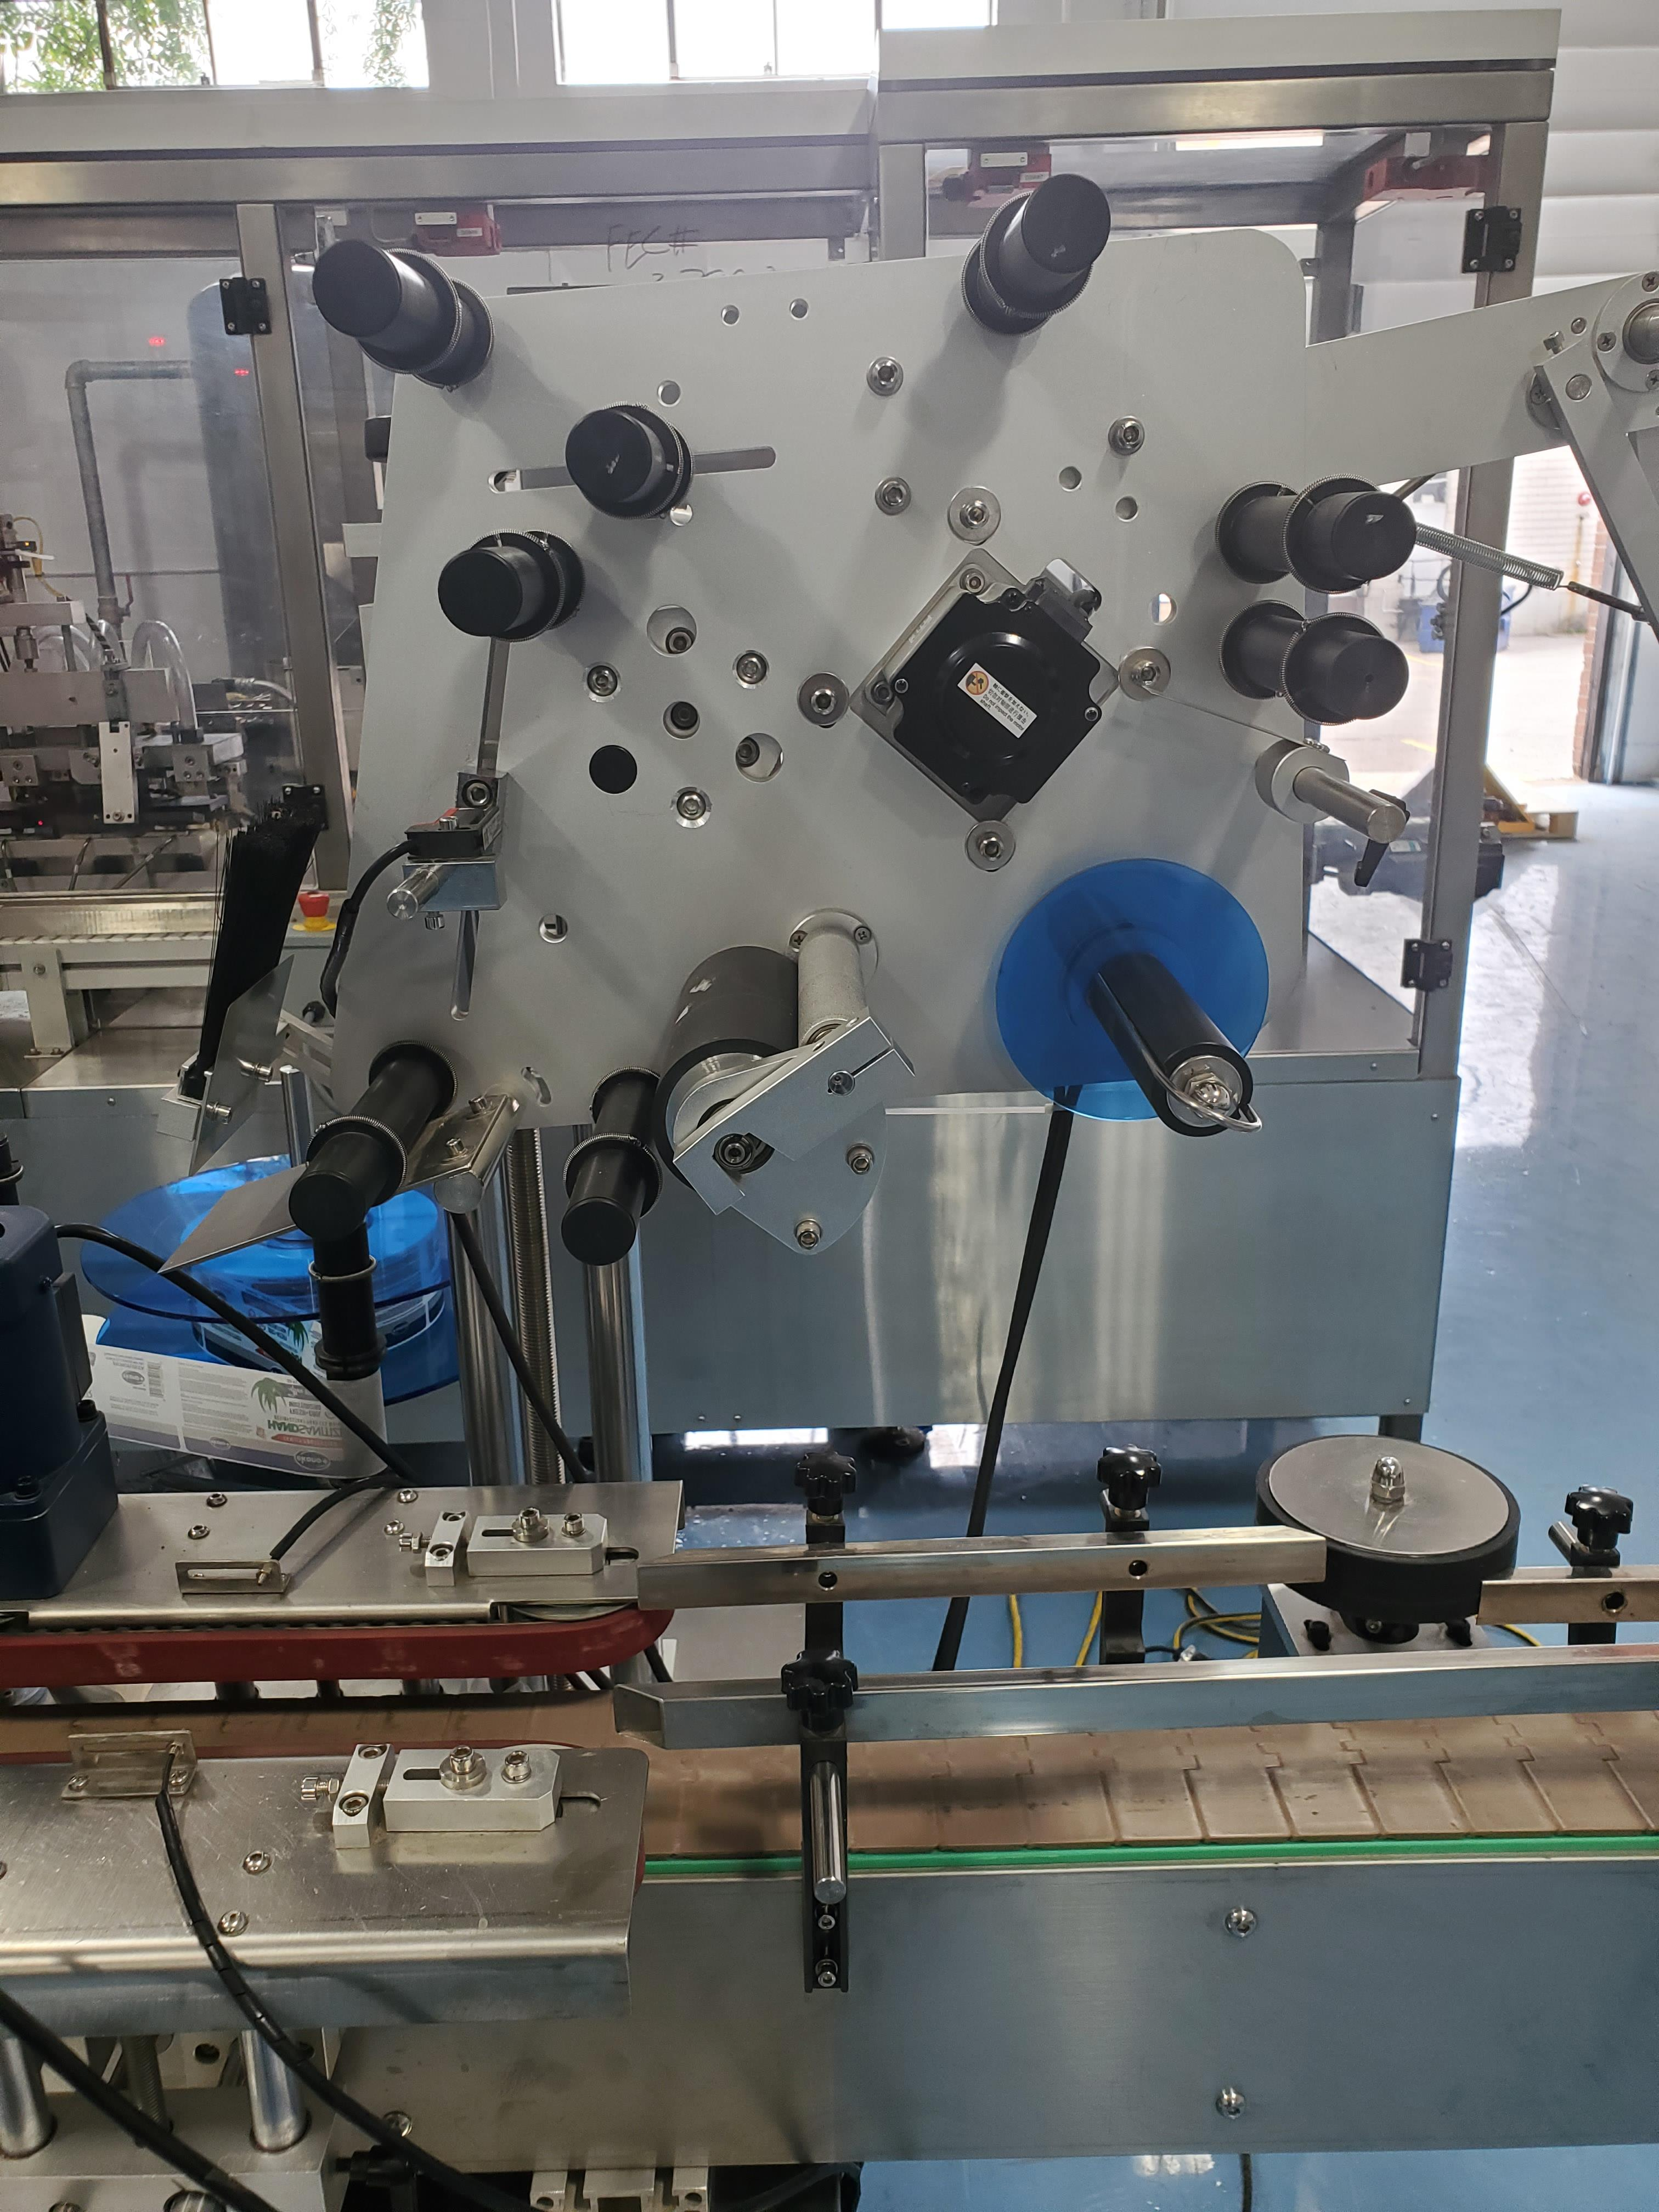 Grepack Packing Machine Integrated Wrap Around and Top Down Labeler with Conveyor - Image 7 of 8